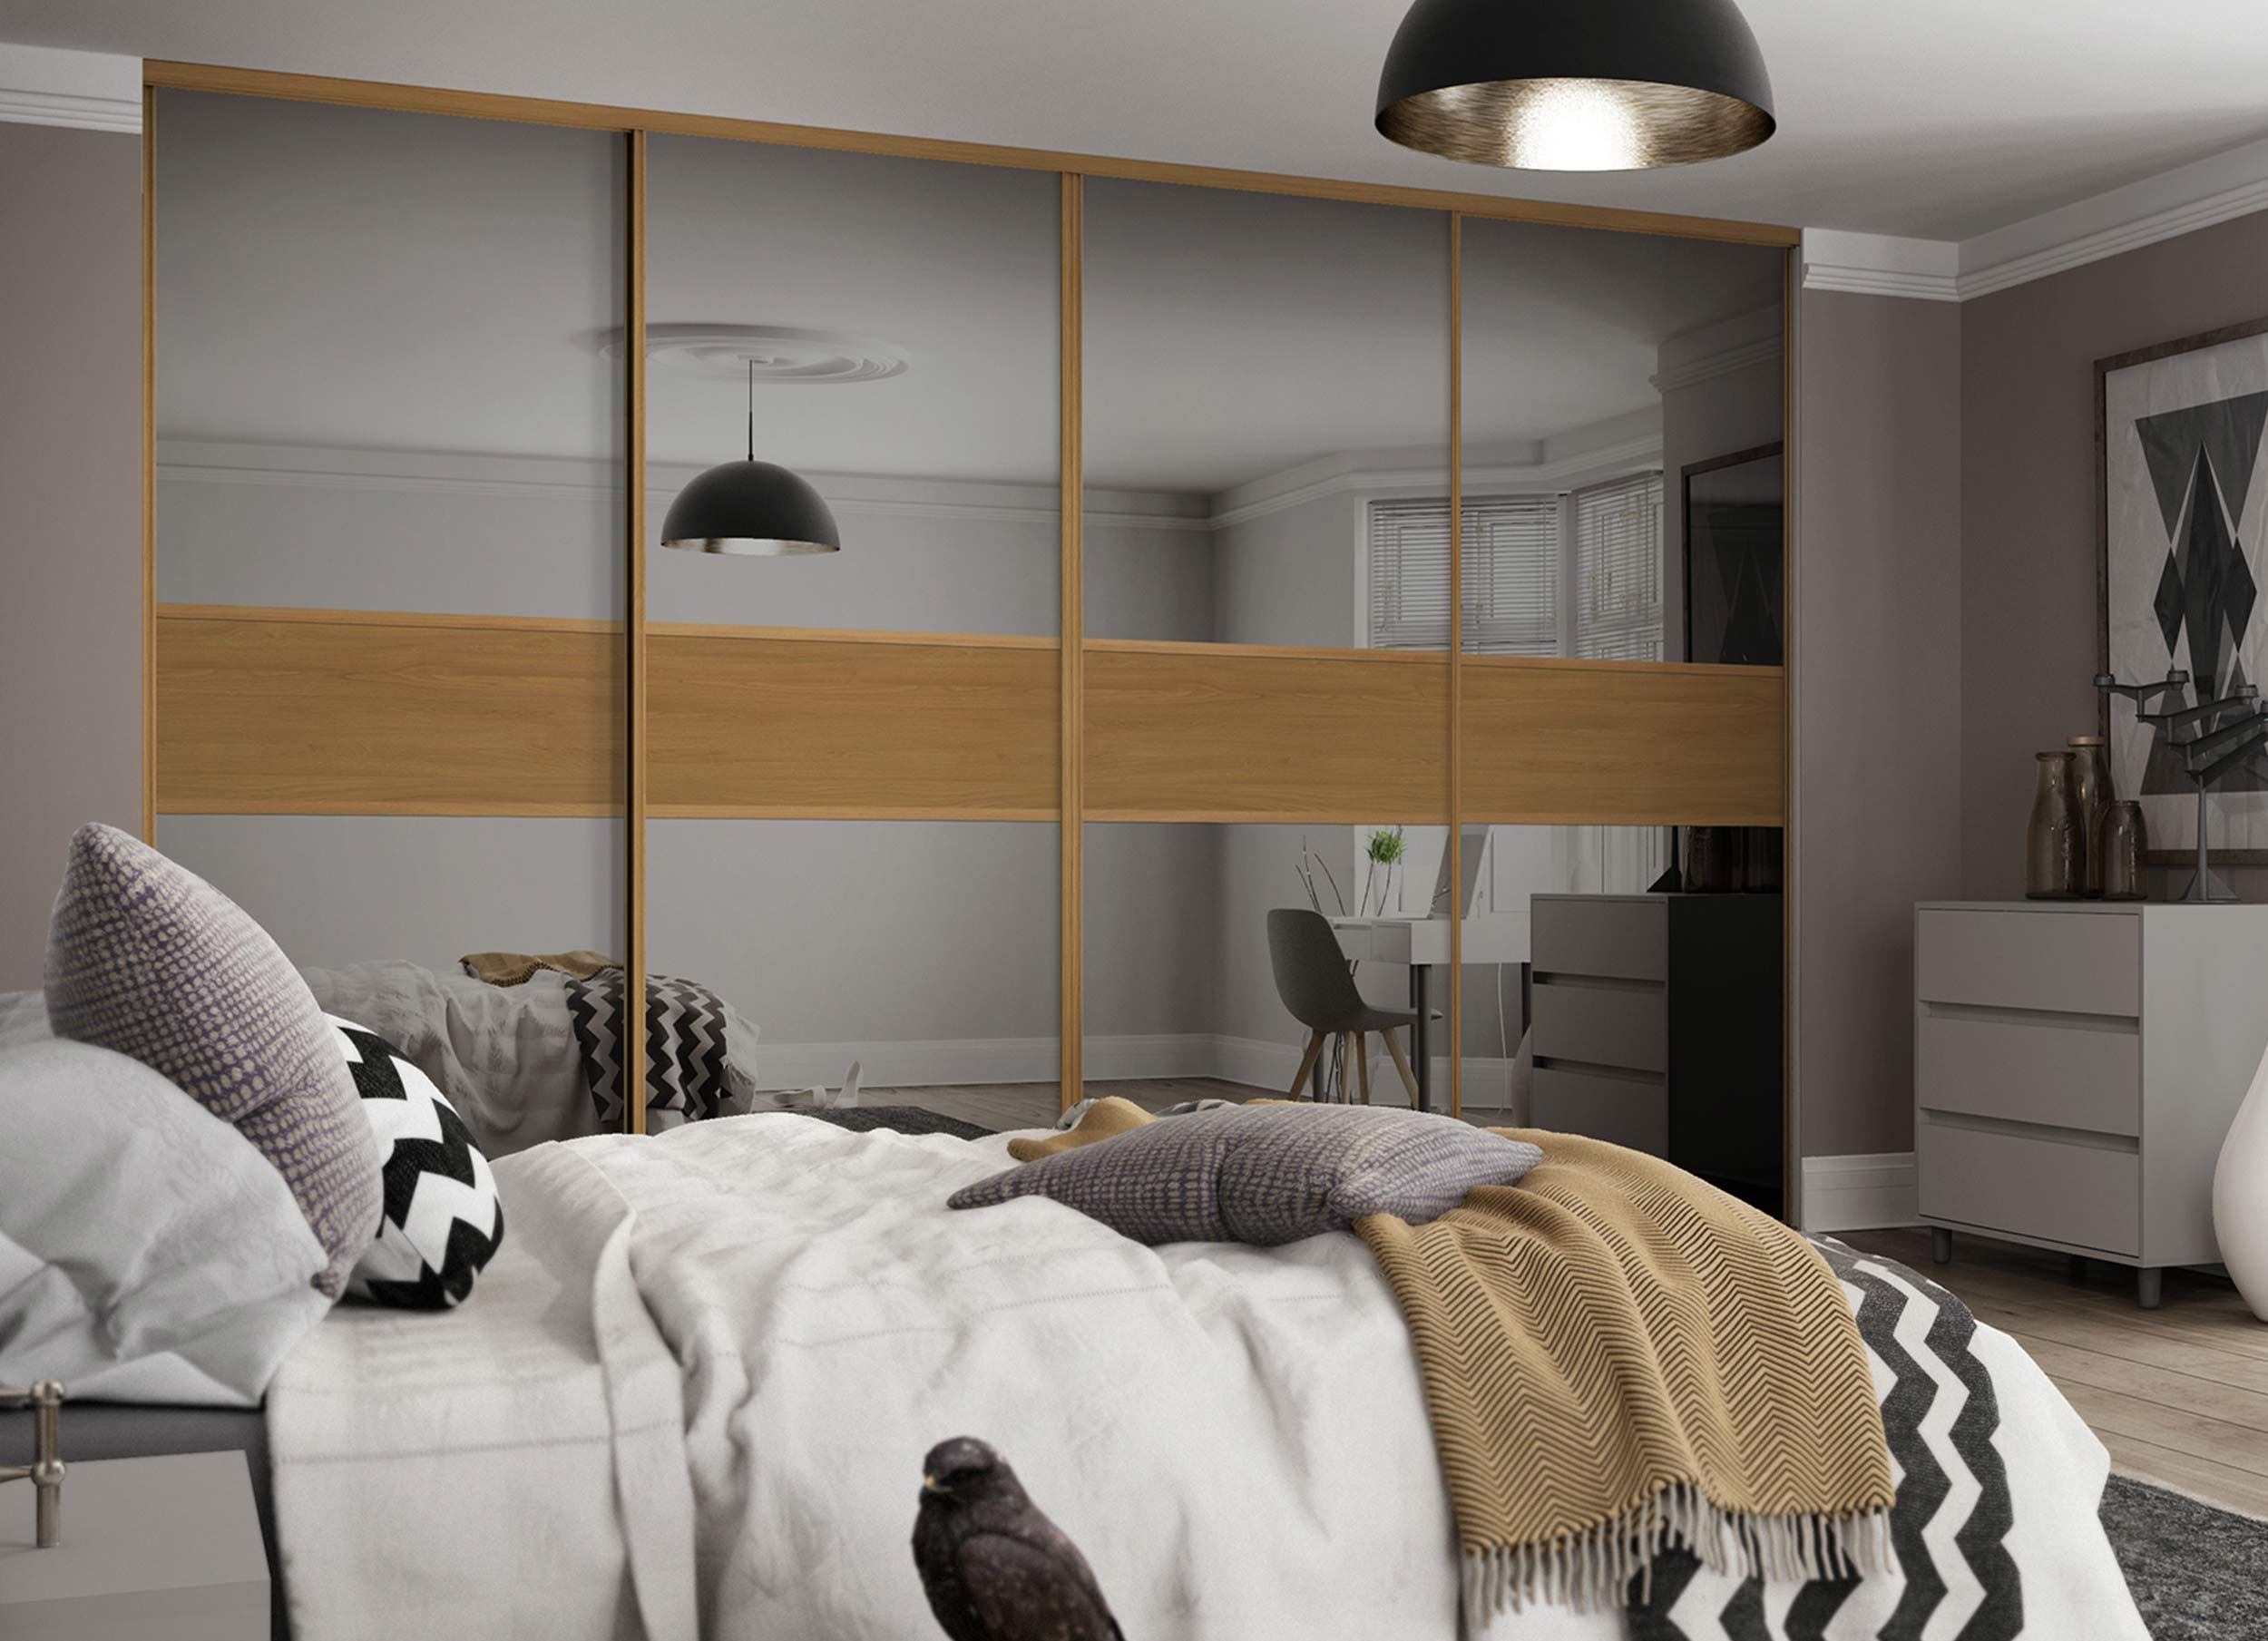 3 panel mirrored sliding closet doors - For A Contemporary Style Use Classic 3 Panel Sliding Wardrobe Doors In A Fineline Grey